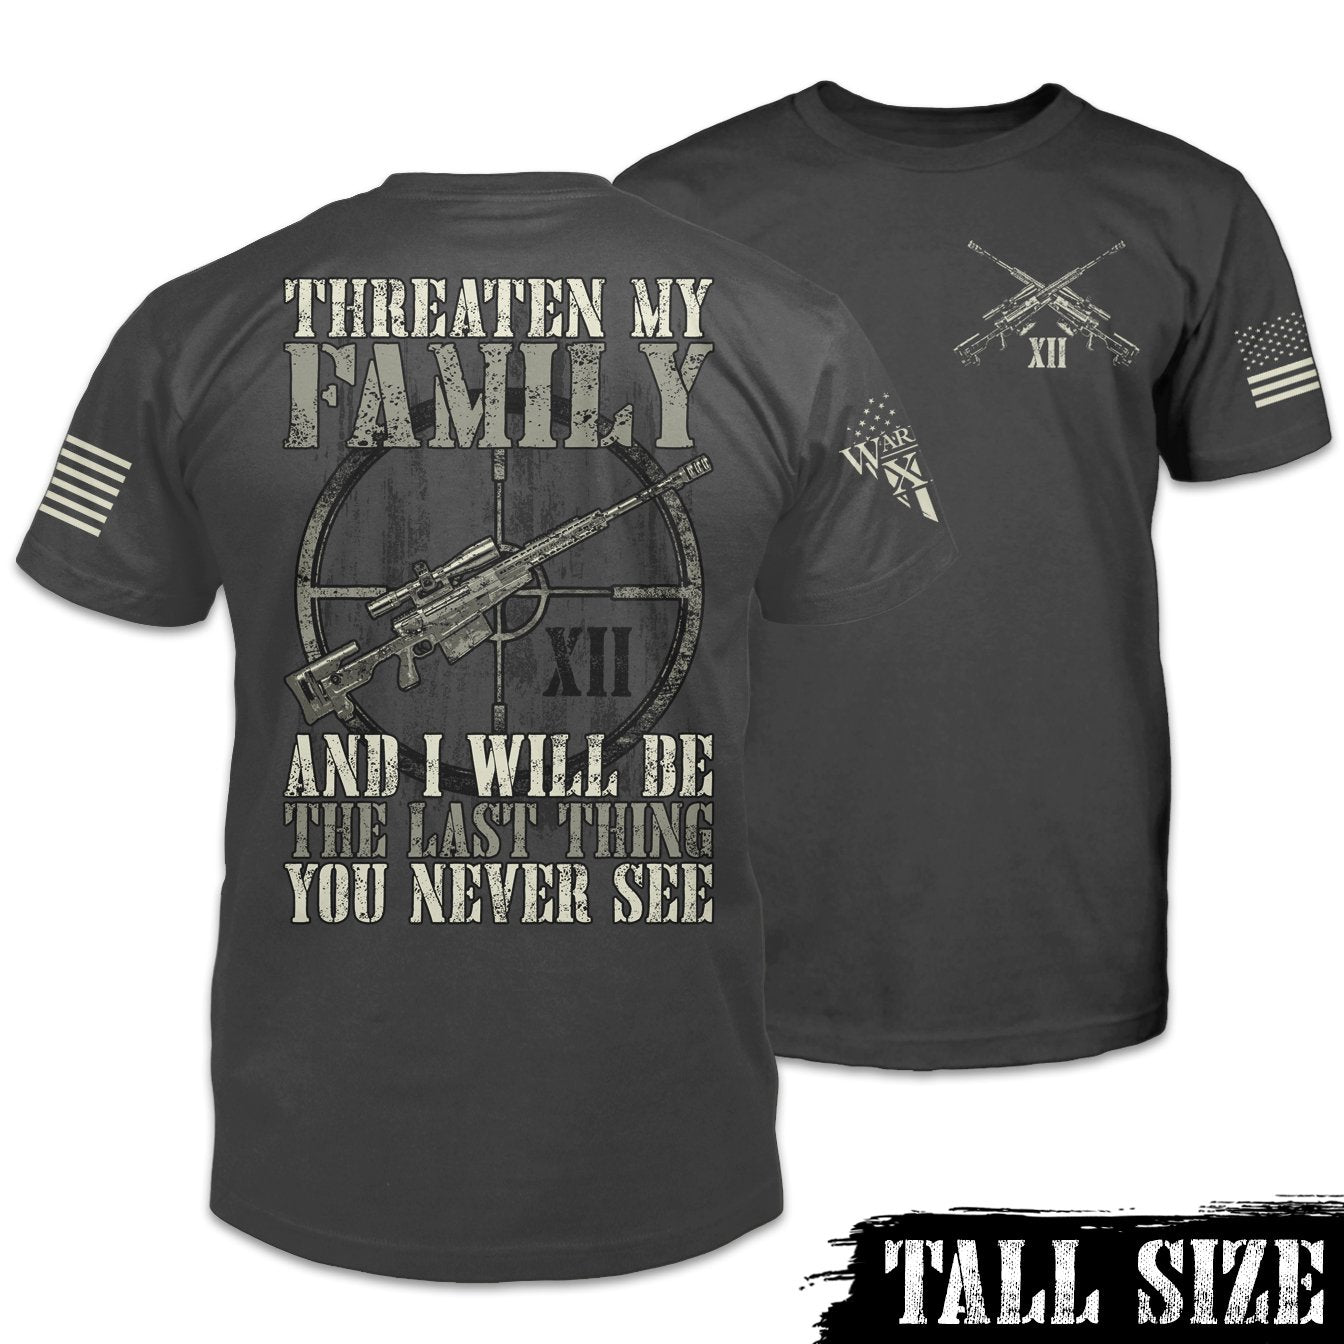 Last Thing You Never See Shirt Combo Tall Size